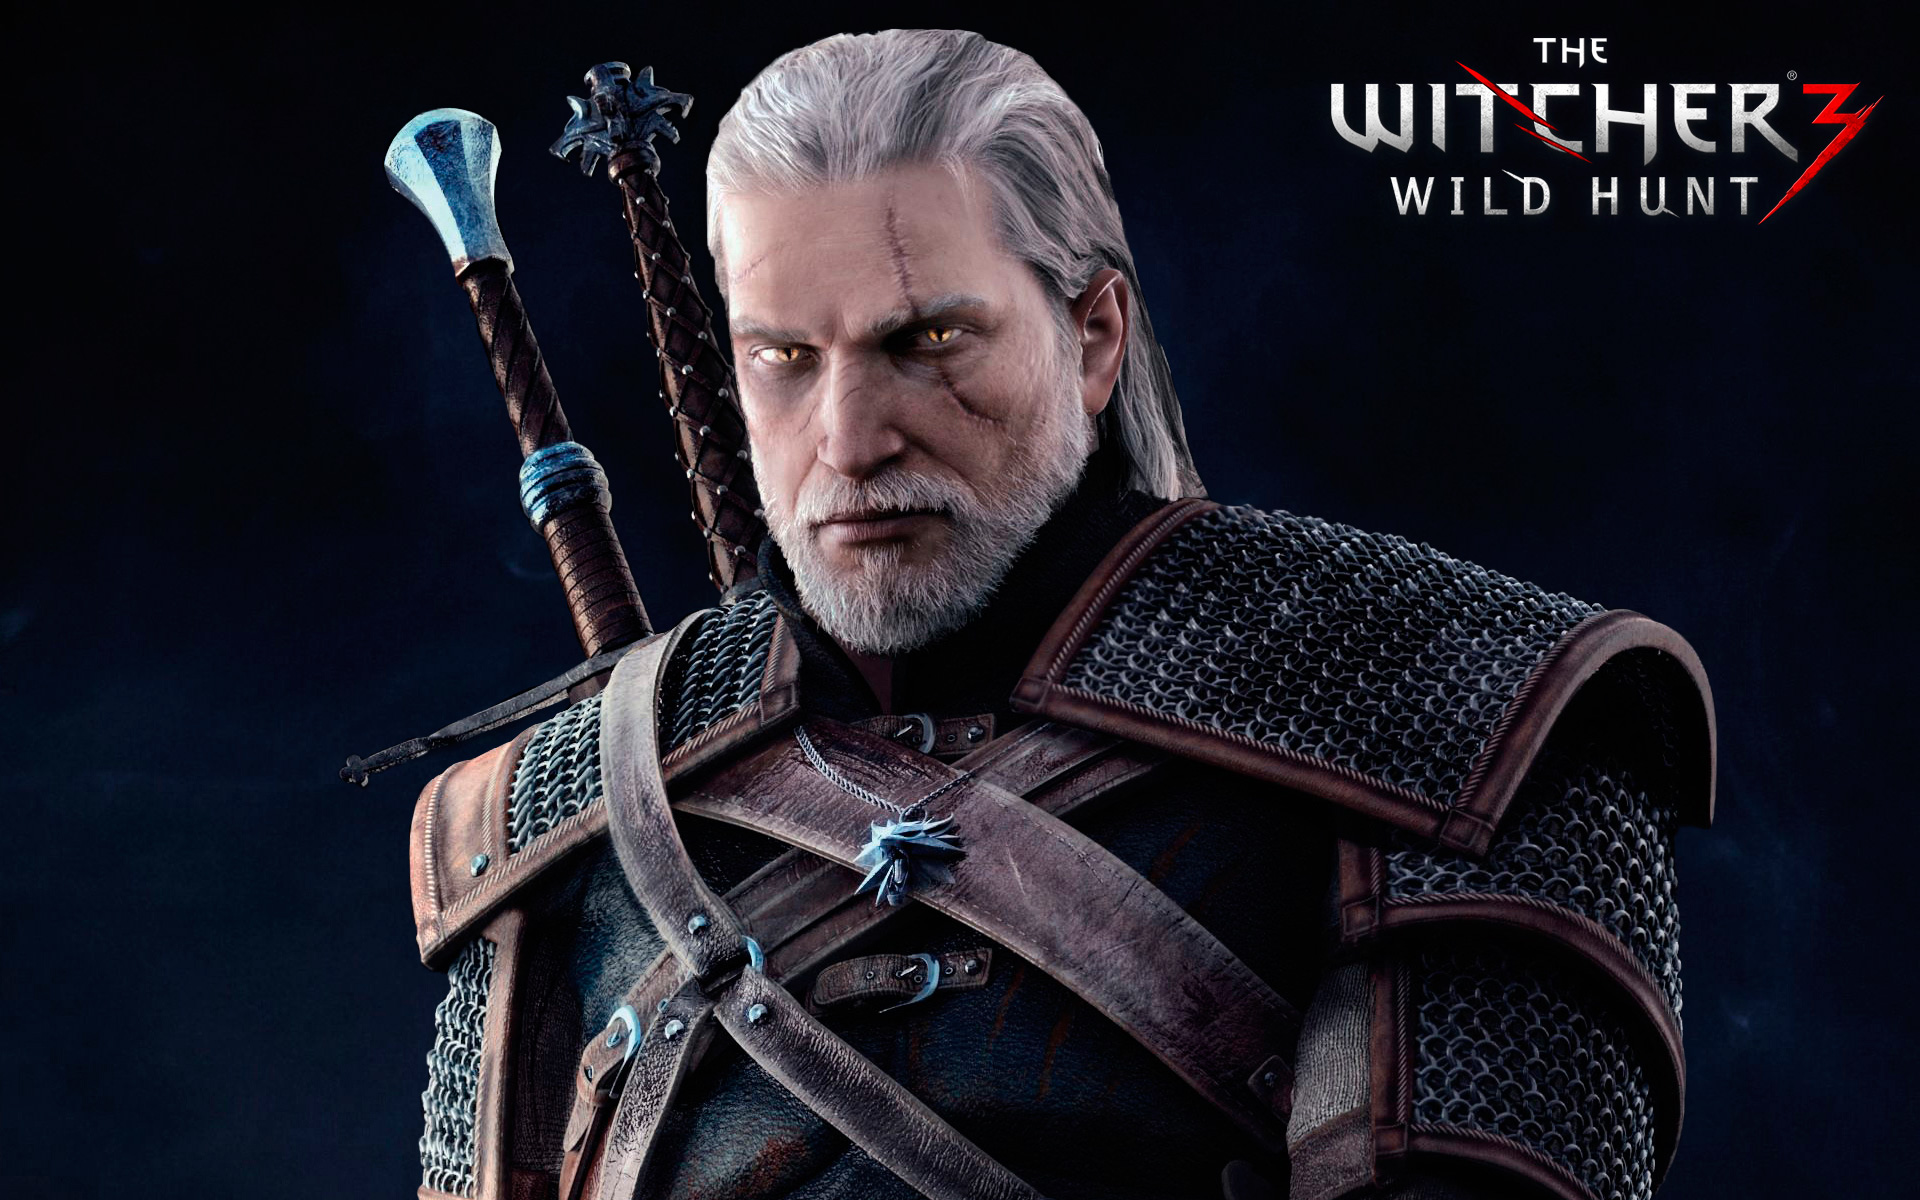 The Witcher 3 Wallpaper in 1920x1200